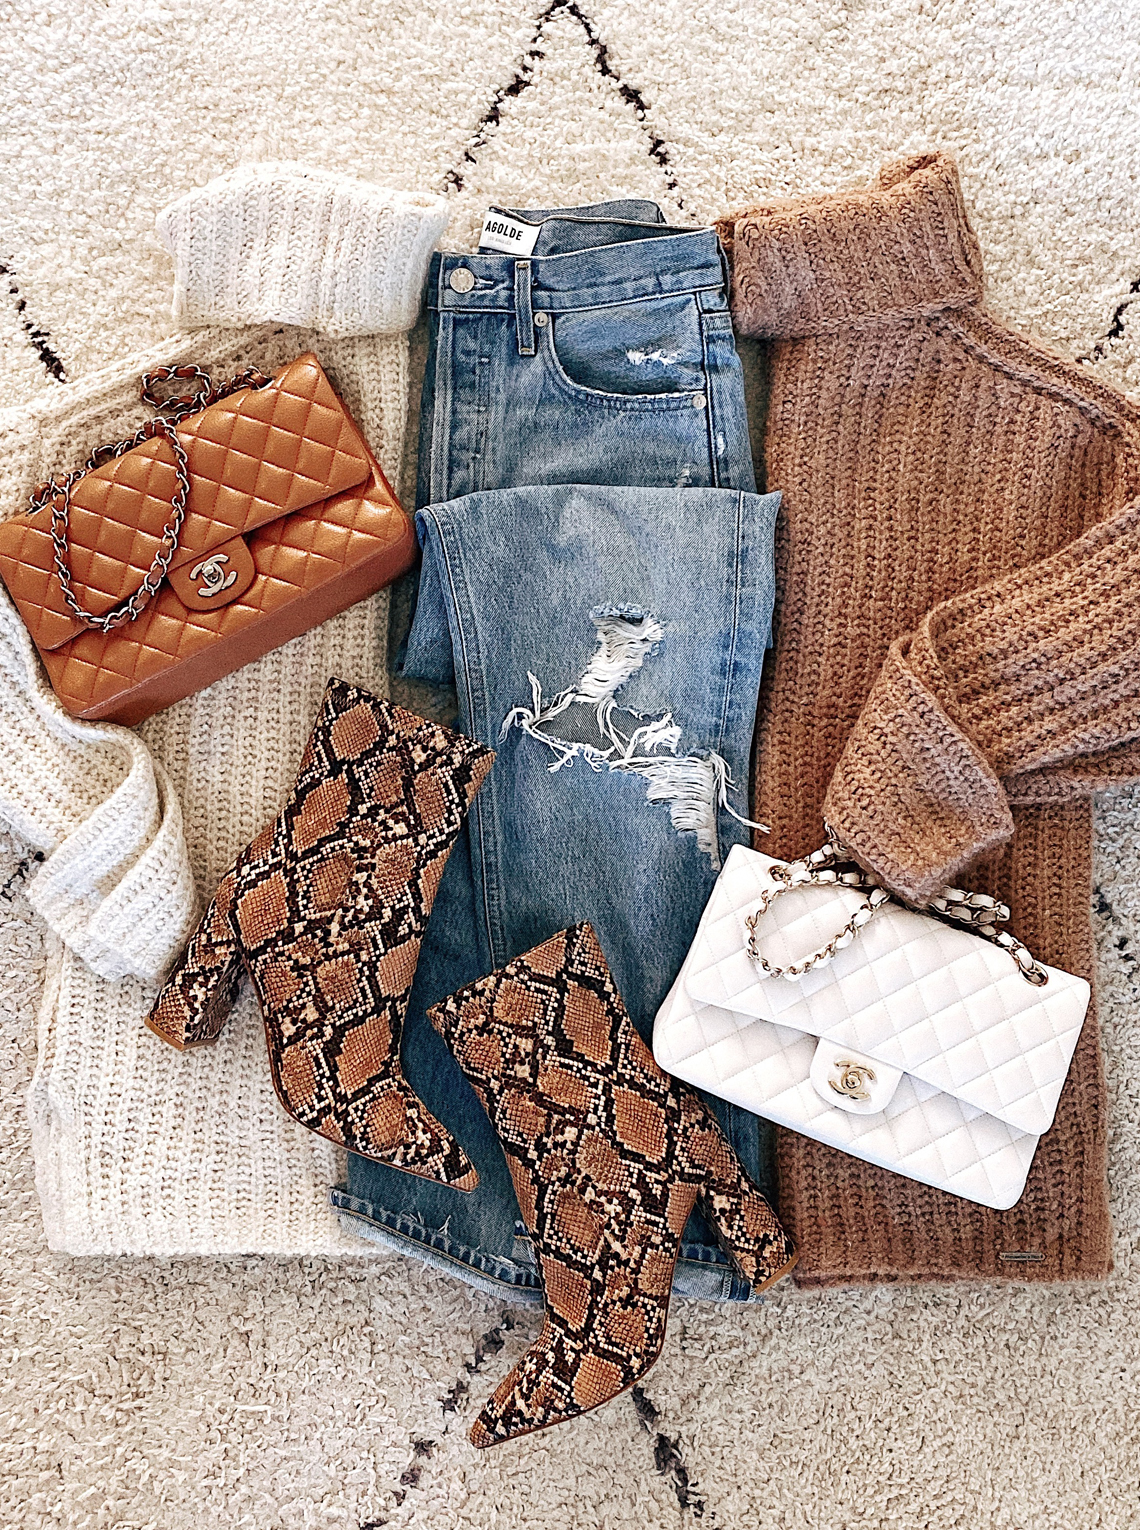 Abercrombie Turtleneck Sweaters Ripped Jeans Snakeskin Booties Chanel Handbags